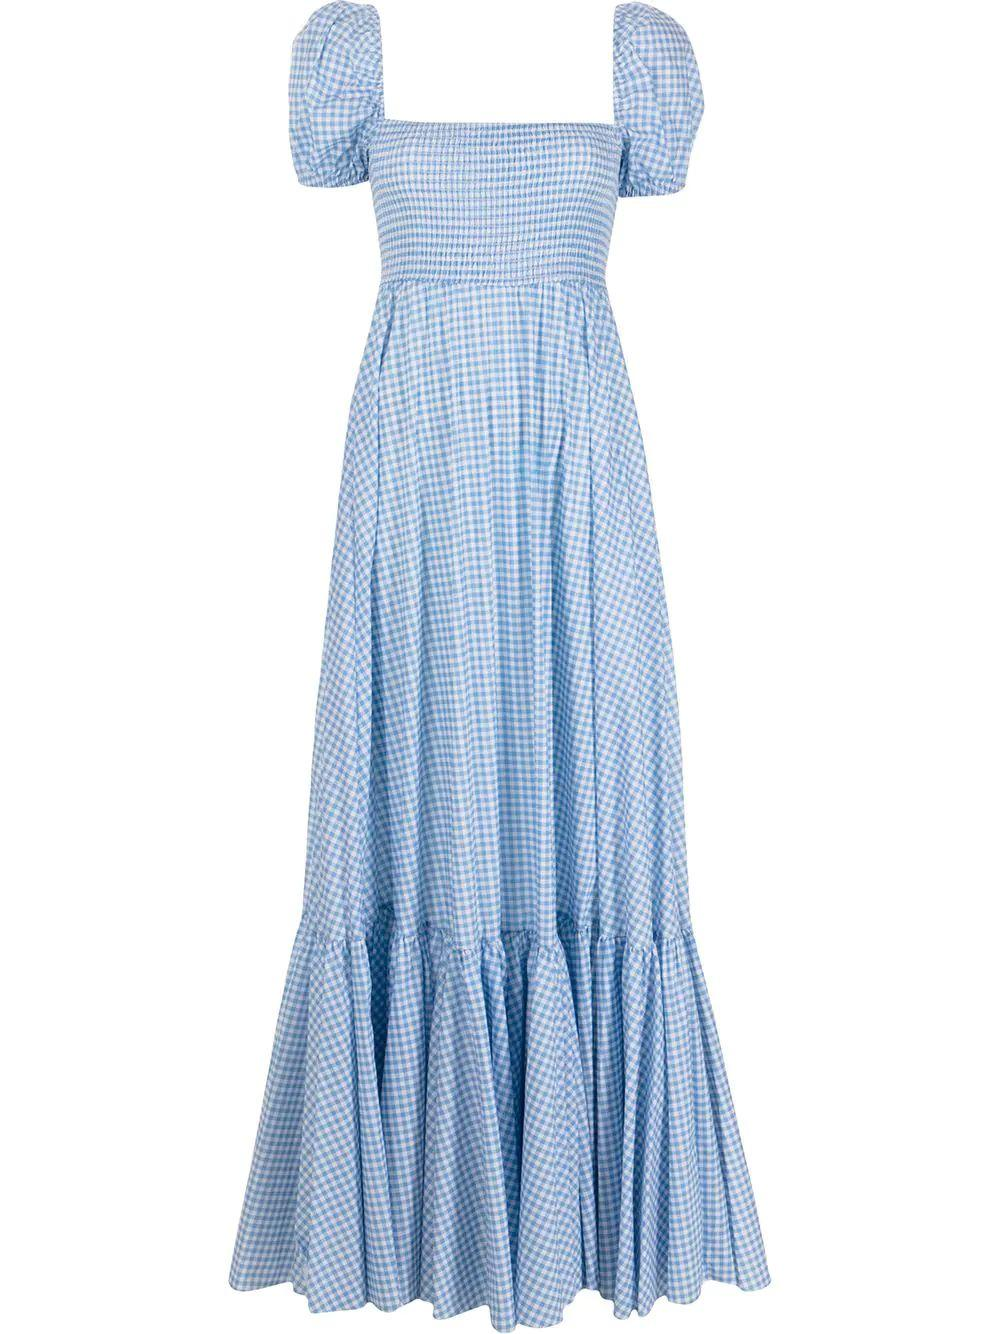 Gianna Gingham Maxi Dress